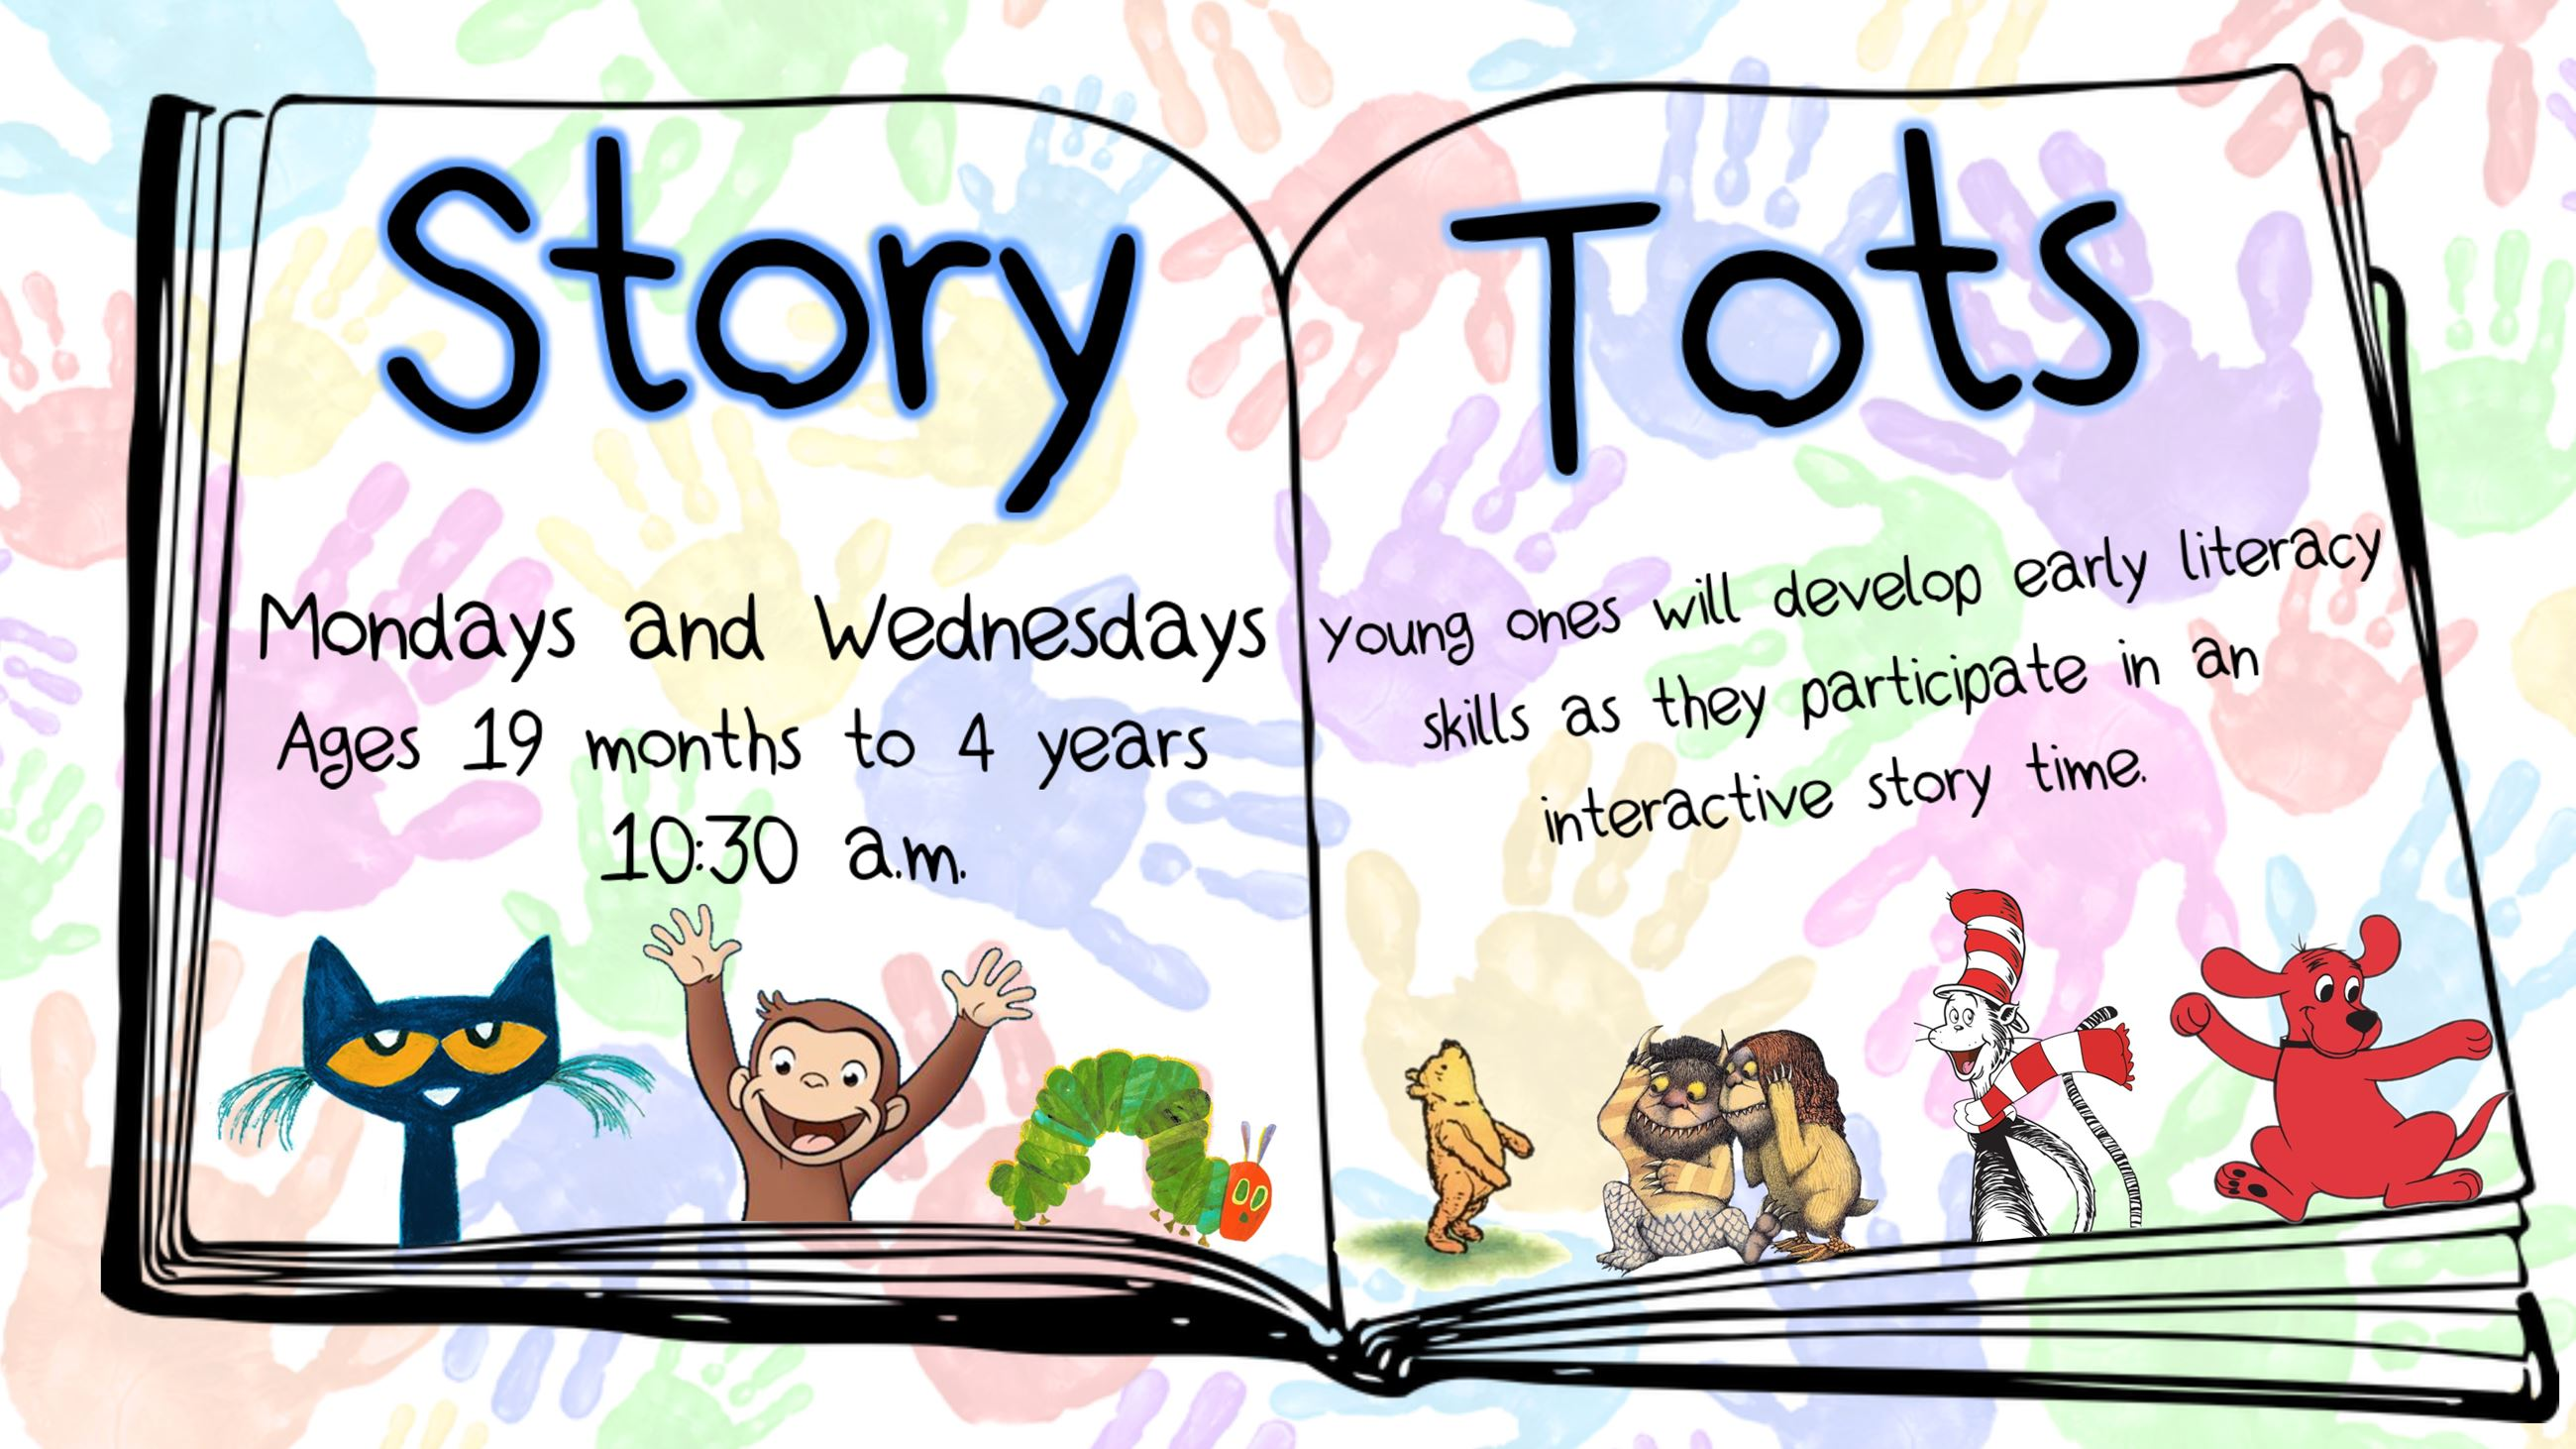 Story Tots. Mondays and Wednesdays, 10:30 a.m. Ages 19 months to 4 years.